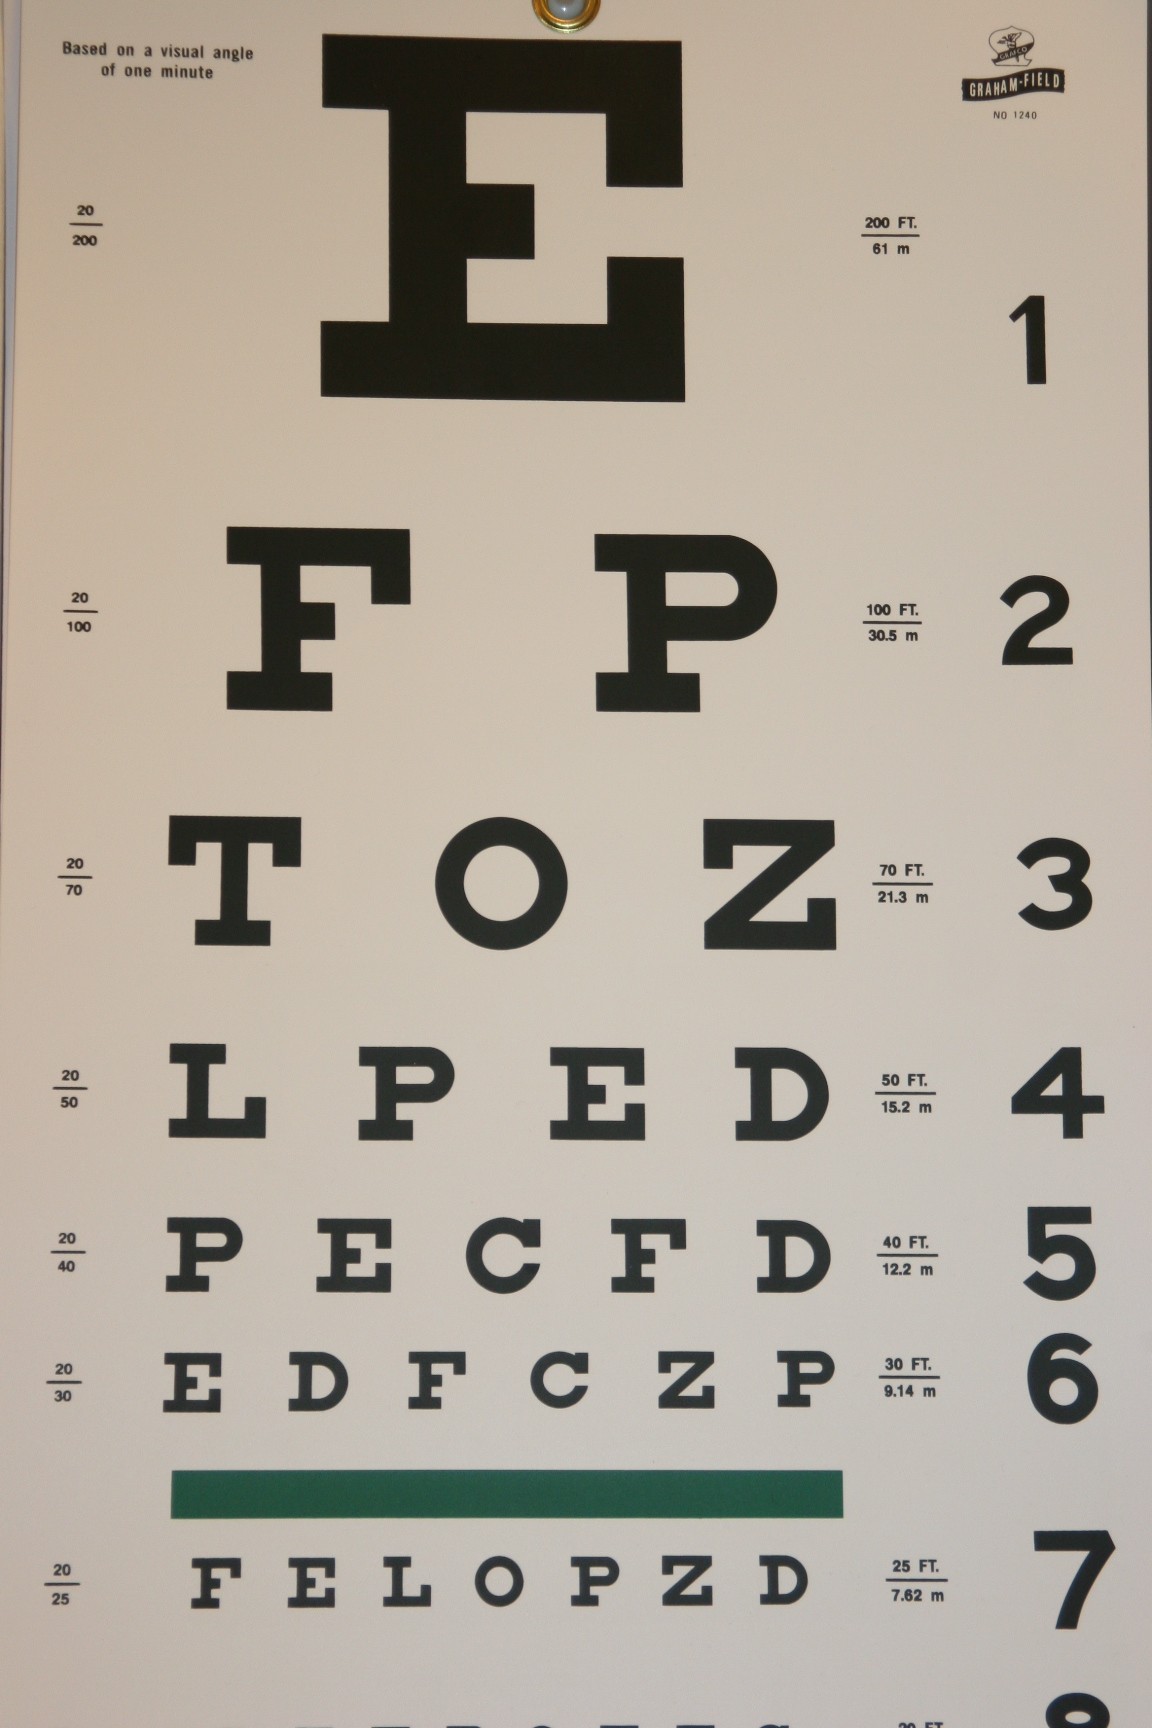 May 19, 2019 - Vision Test - Rev. Norm Seli